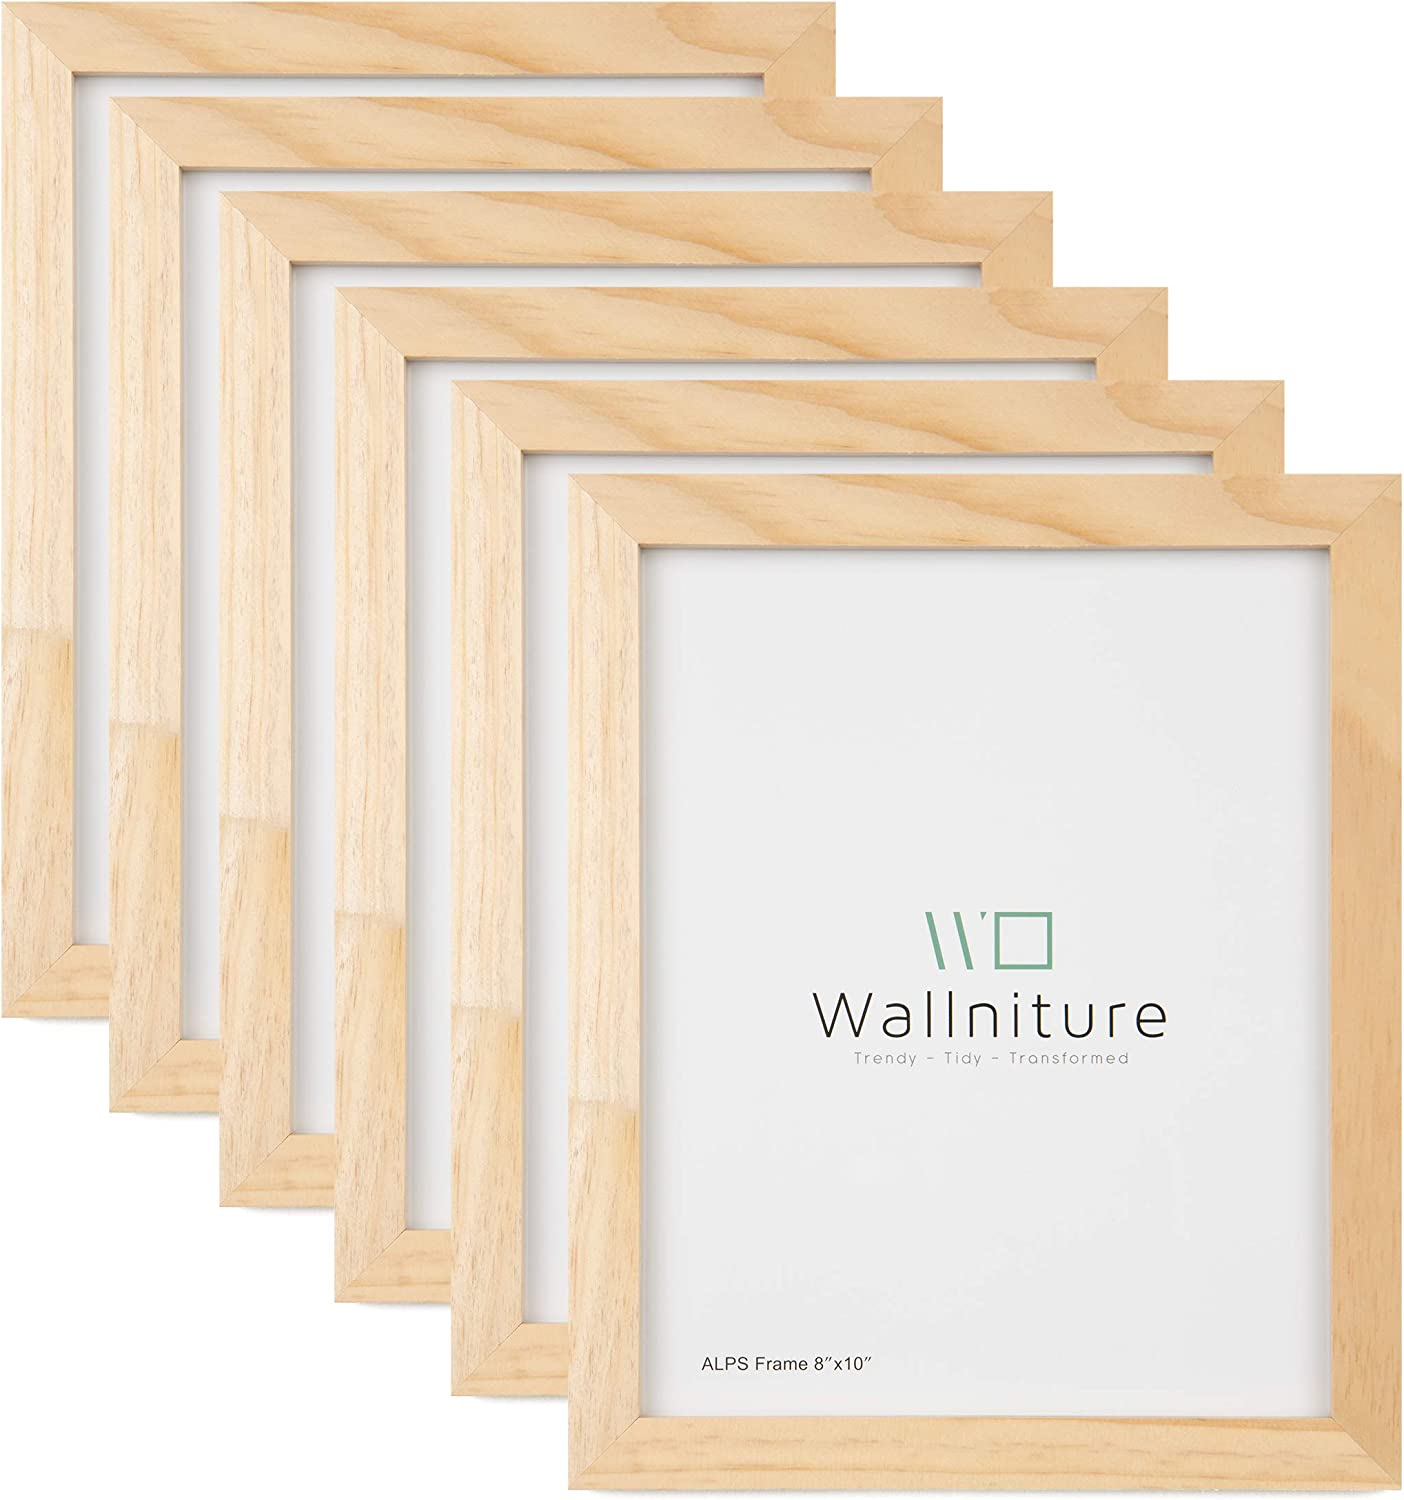 Wallniture Alps DIY Wall Decor 8x10 Picture Frames Table Top Display or Wall Mount, Set of 6 Natural Finish